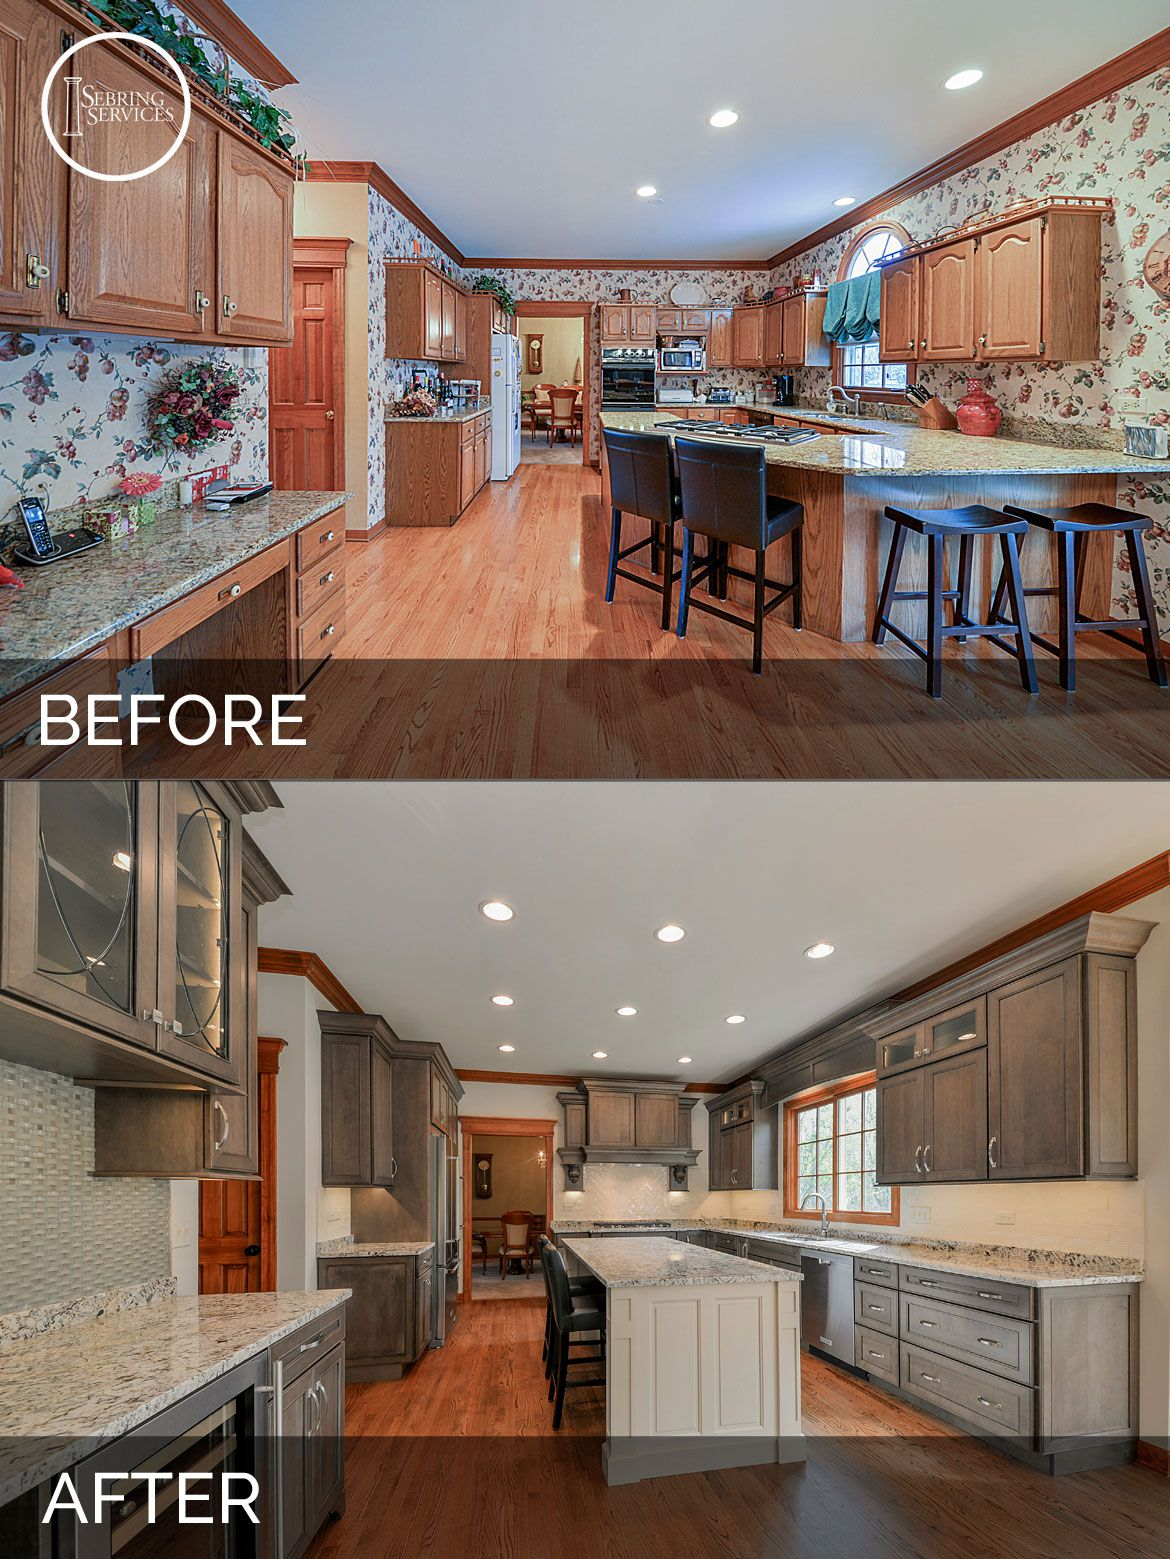 Scott & Karla's Kitchen Before & After Pictures In 2019